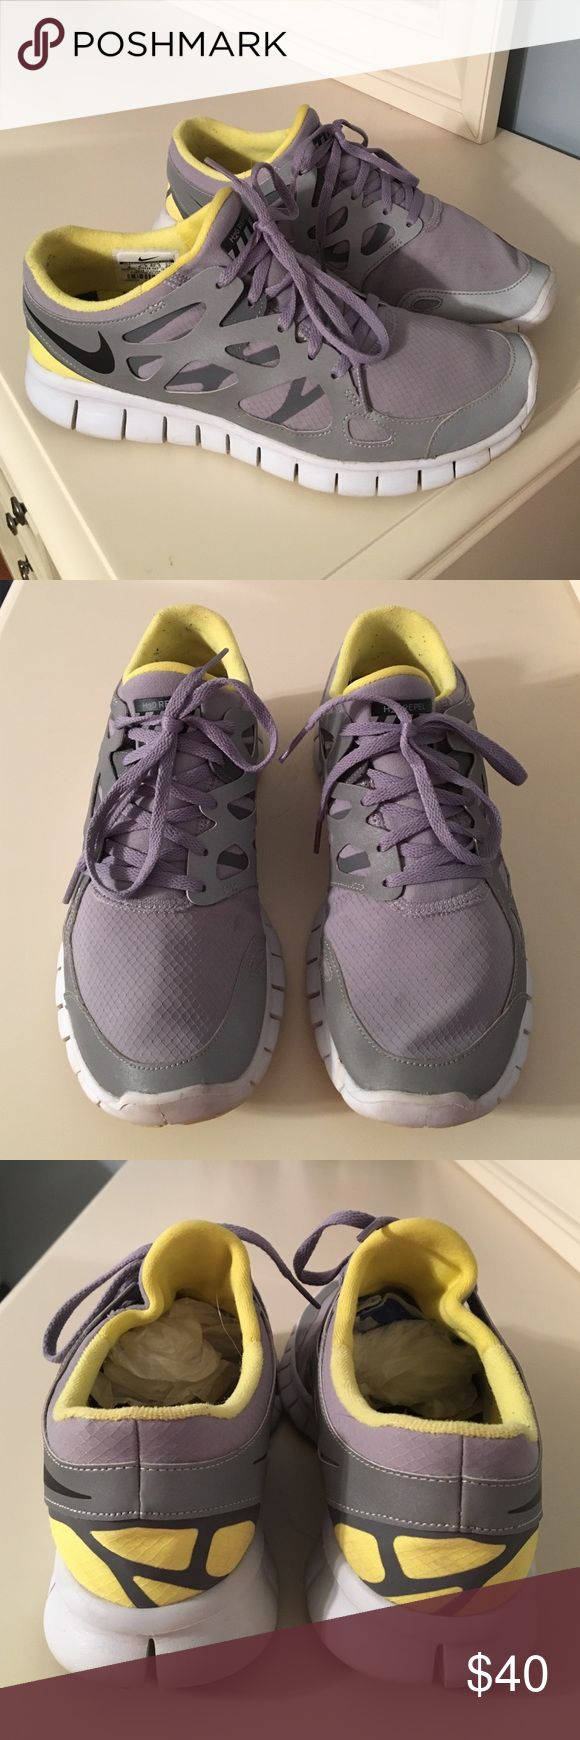 The 25+ best Nike free run 2 ideas on Pinterest | Adidas runners, Nike free  runners and Nike shoe